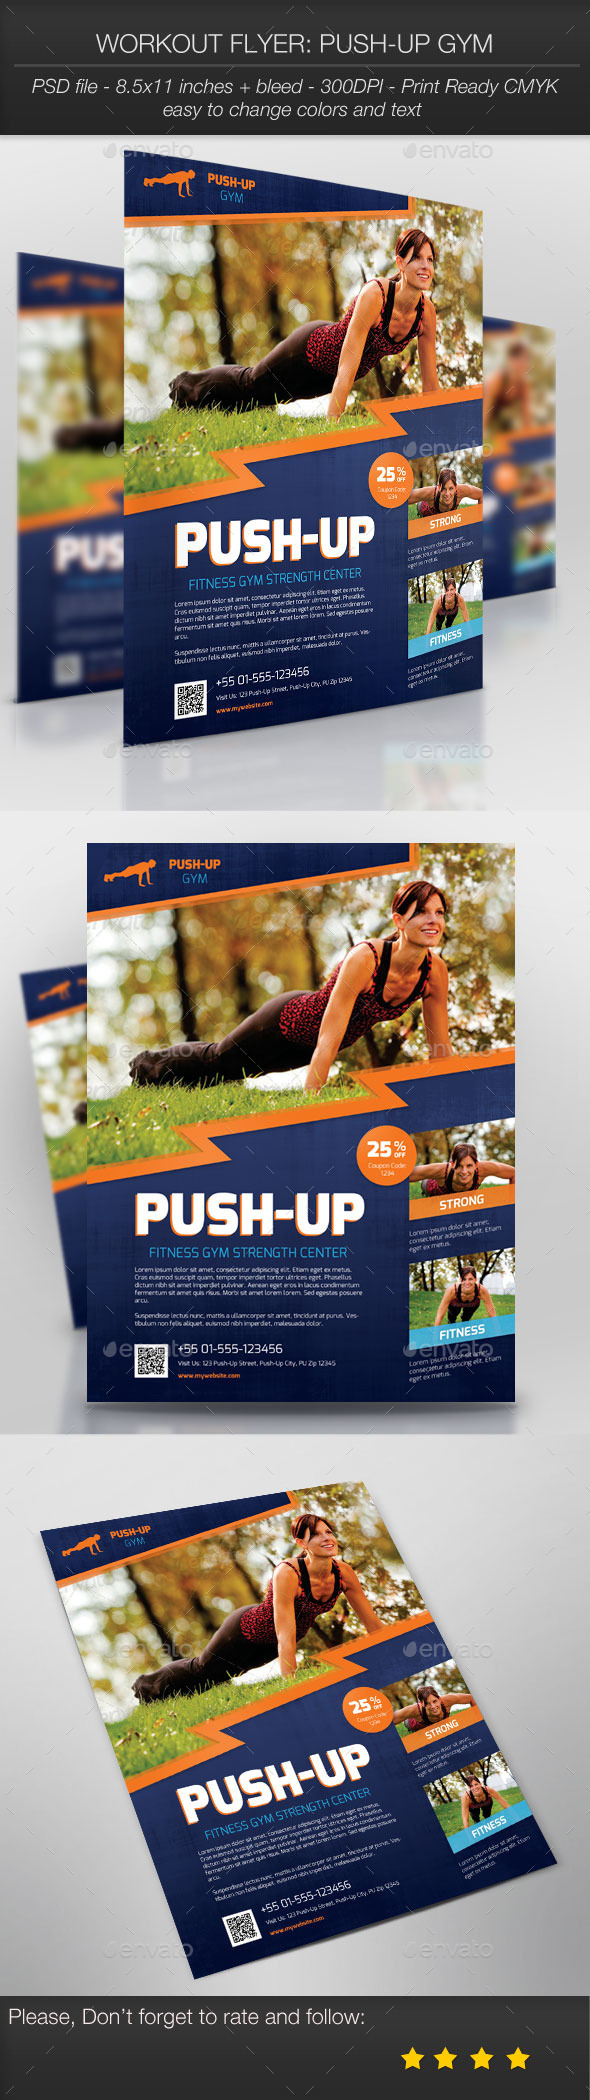 Workout Flyer: Push-Up Gym